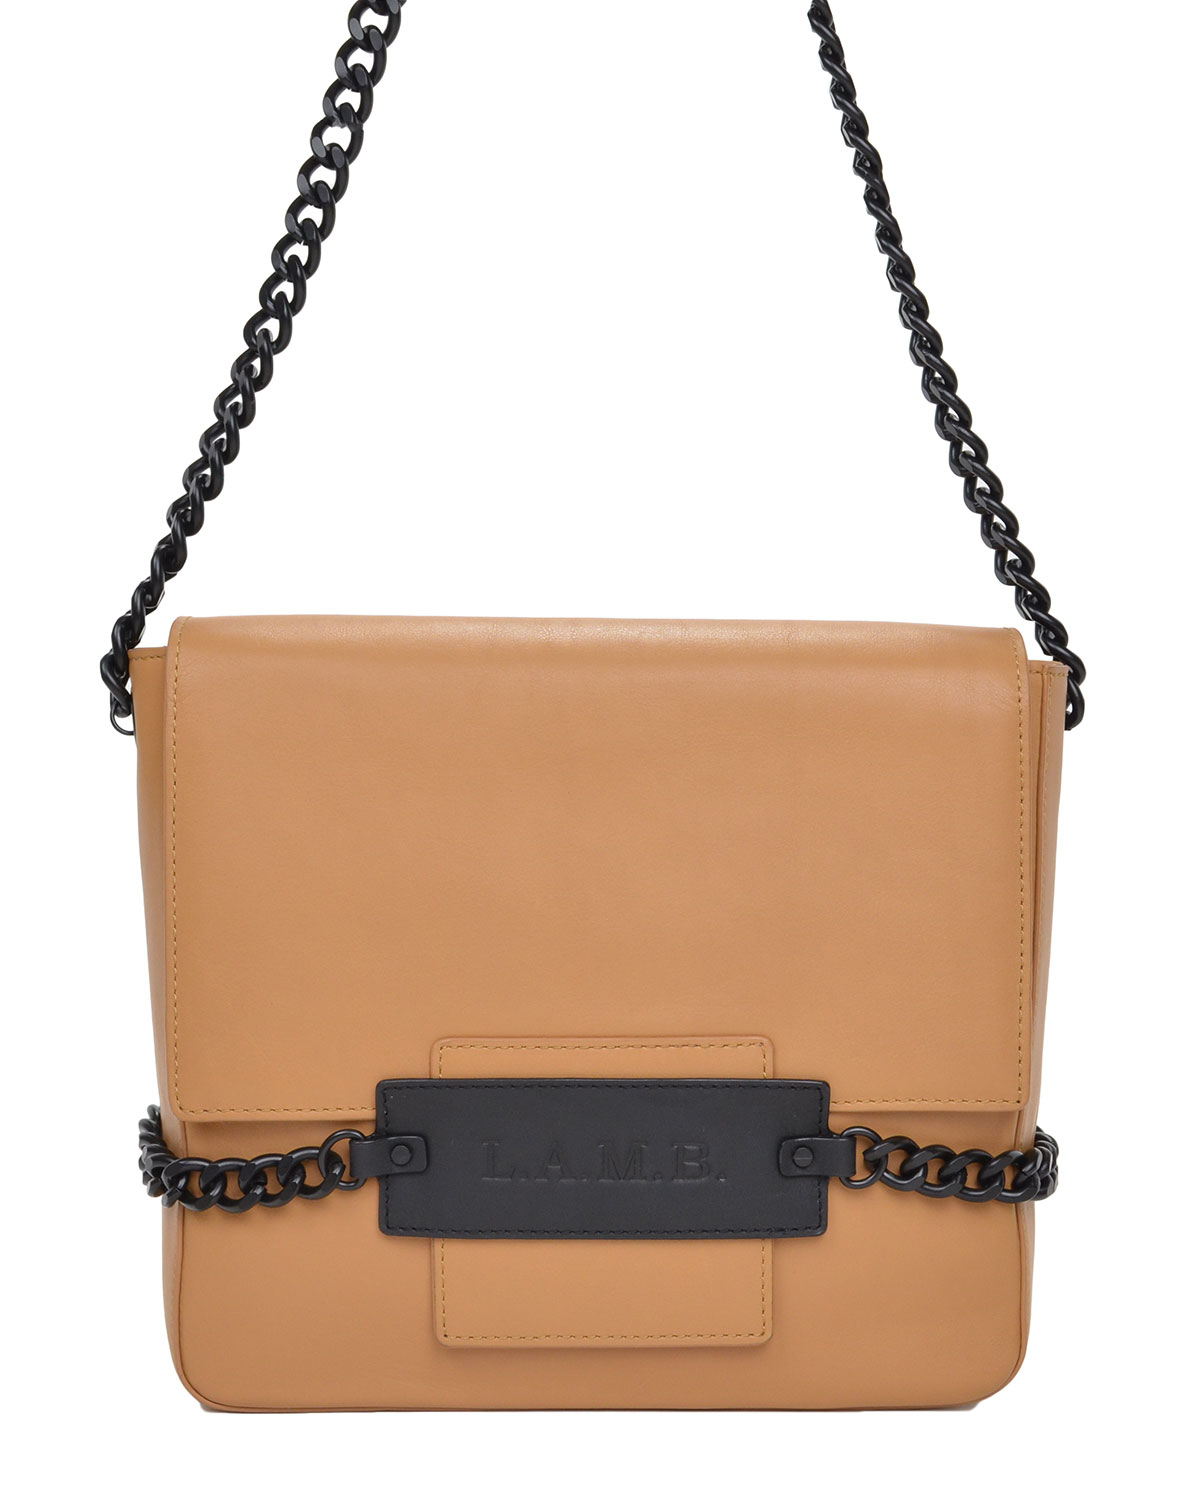 L.A.M.B. Freda Leather Shoulder Bag